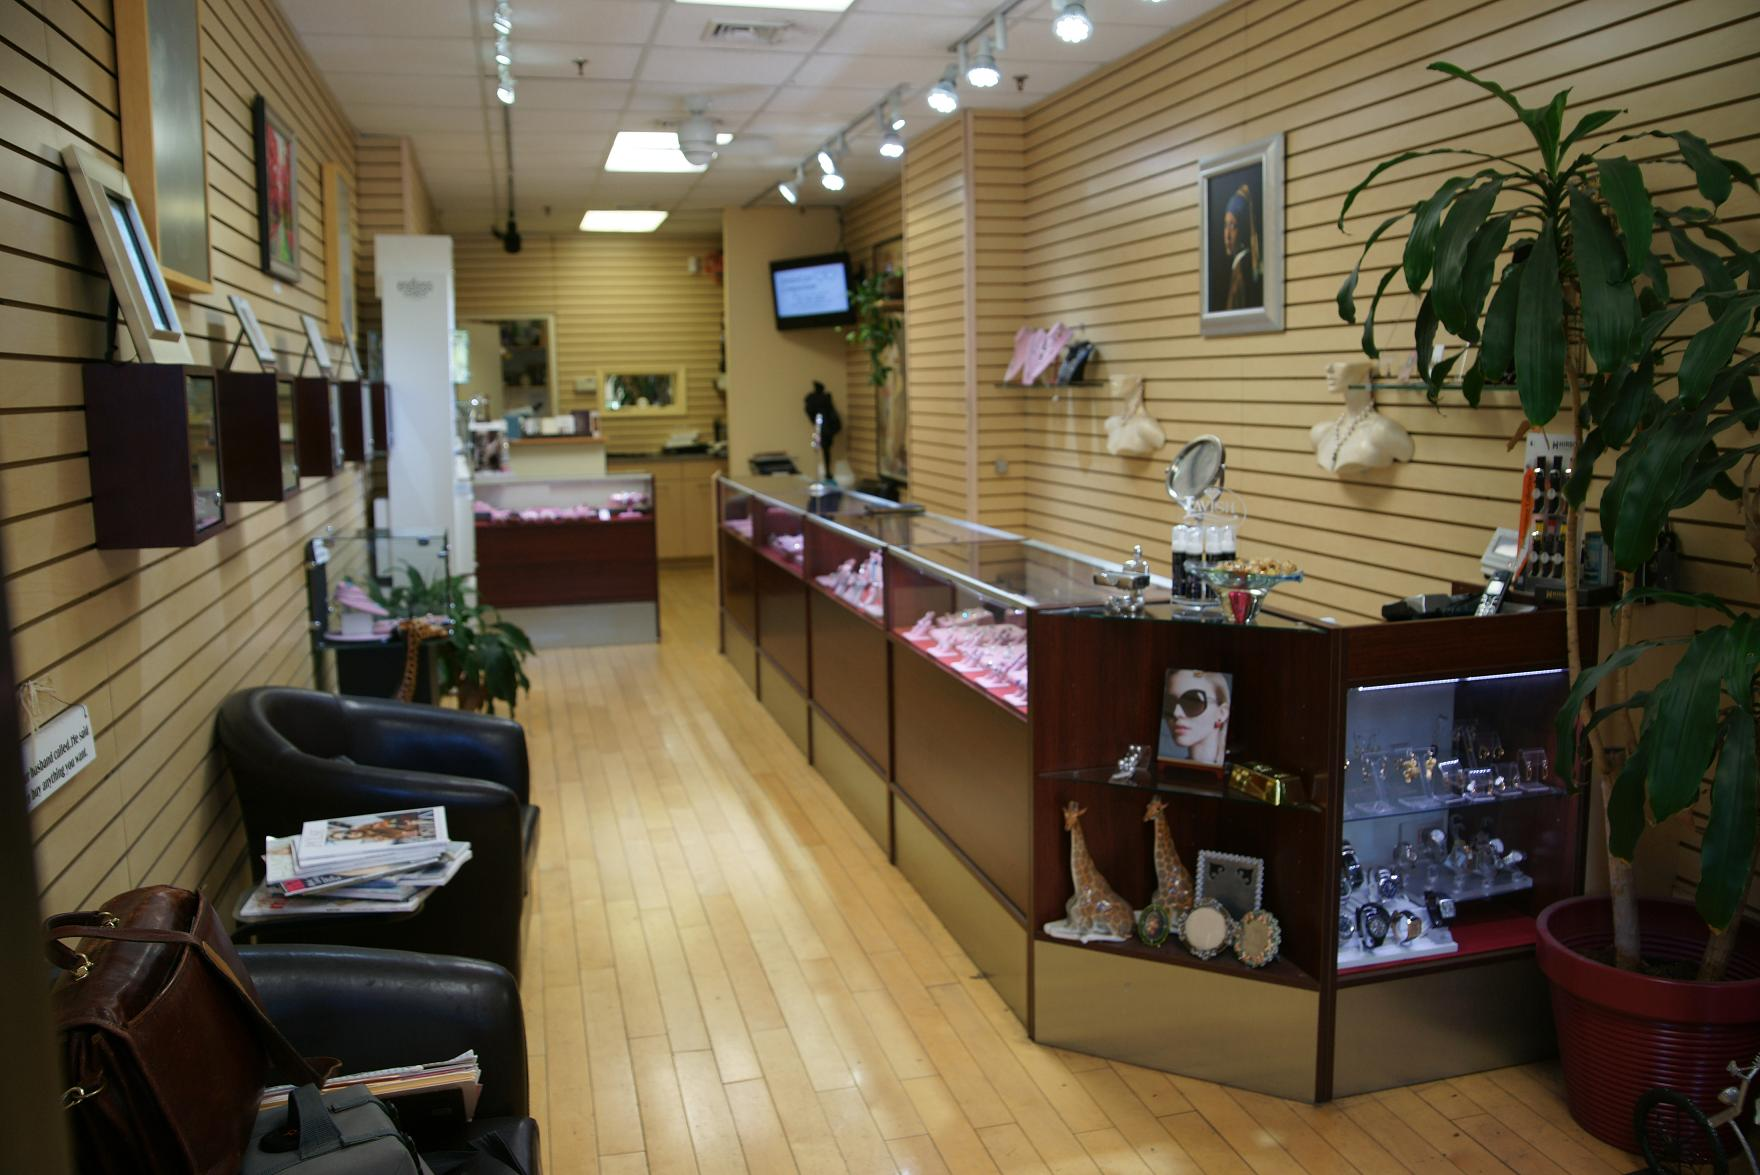 jewelry mekhanix coupons near me in great neck 8coupons